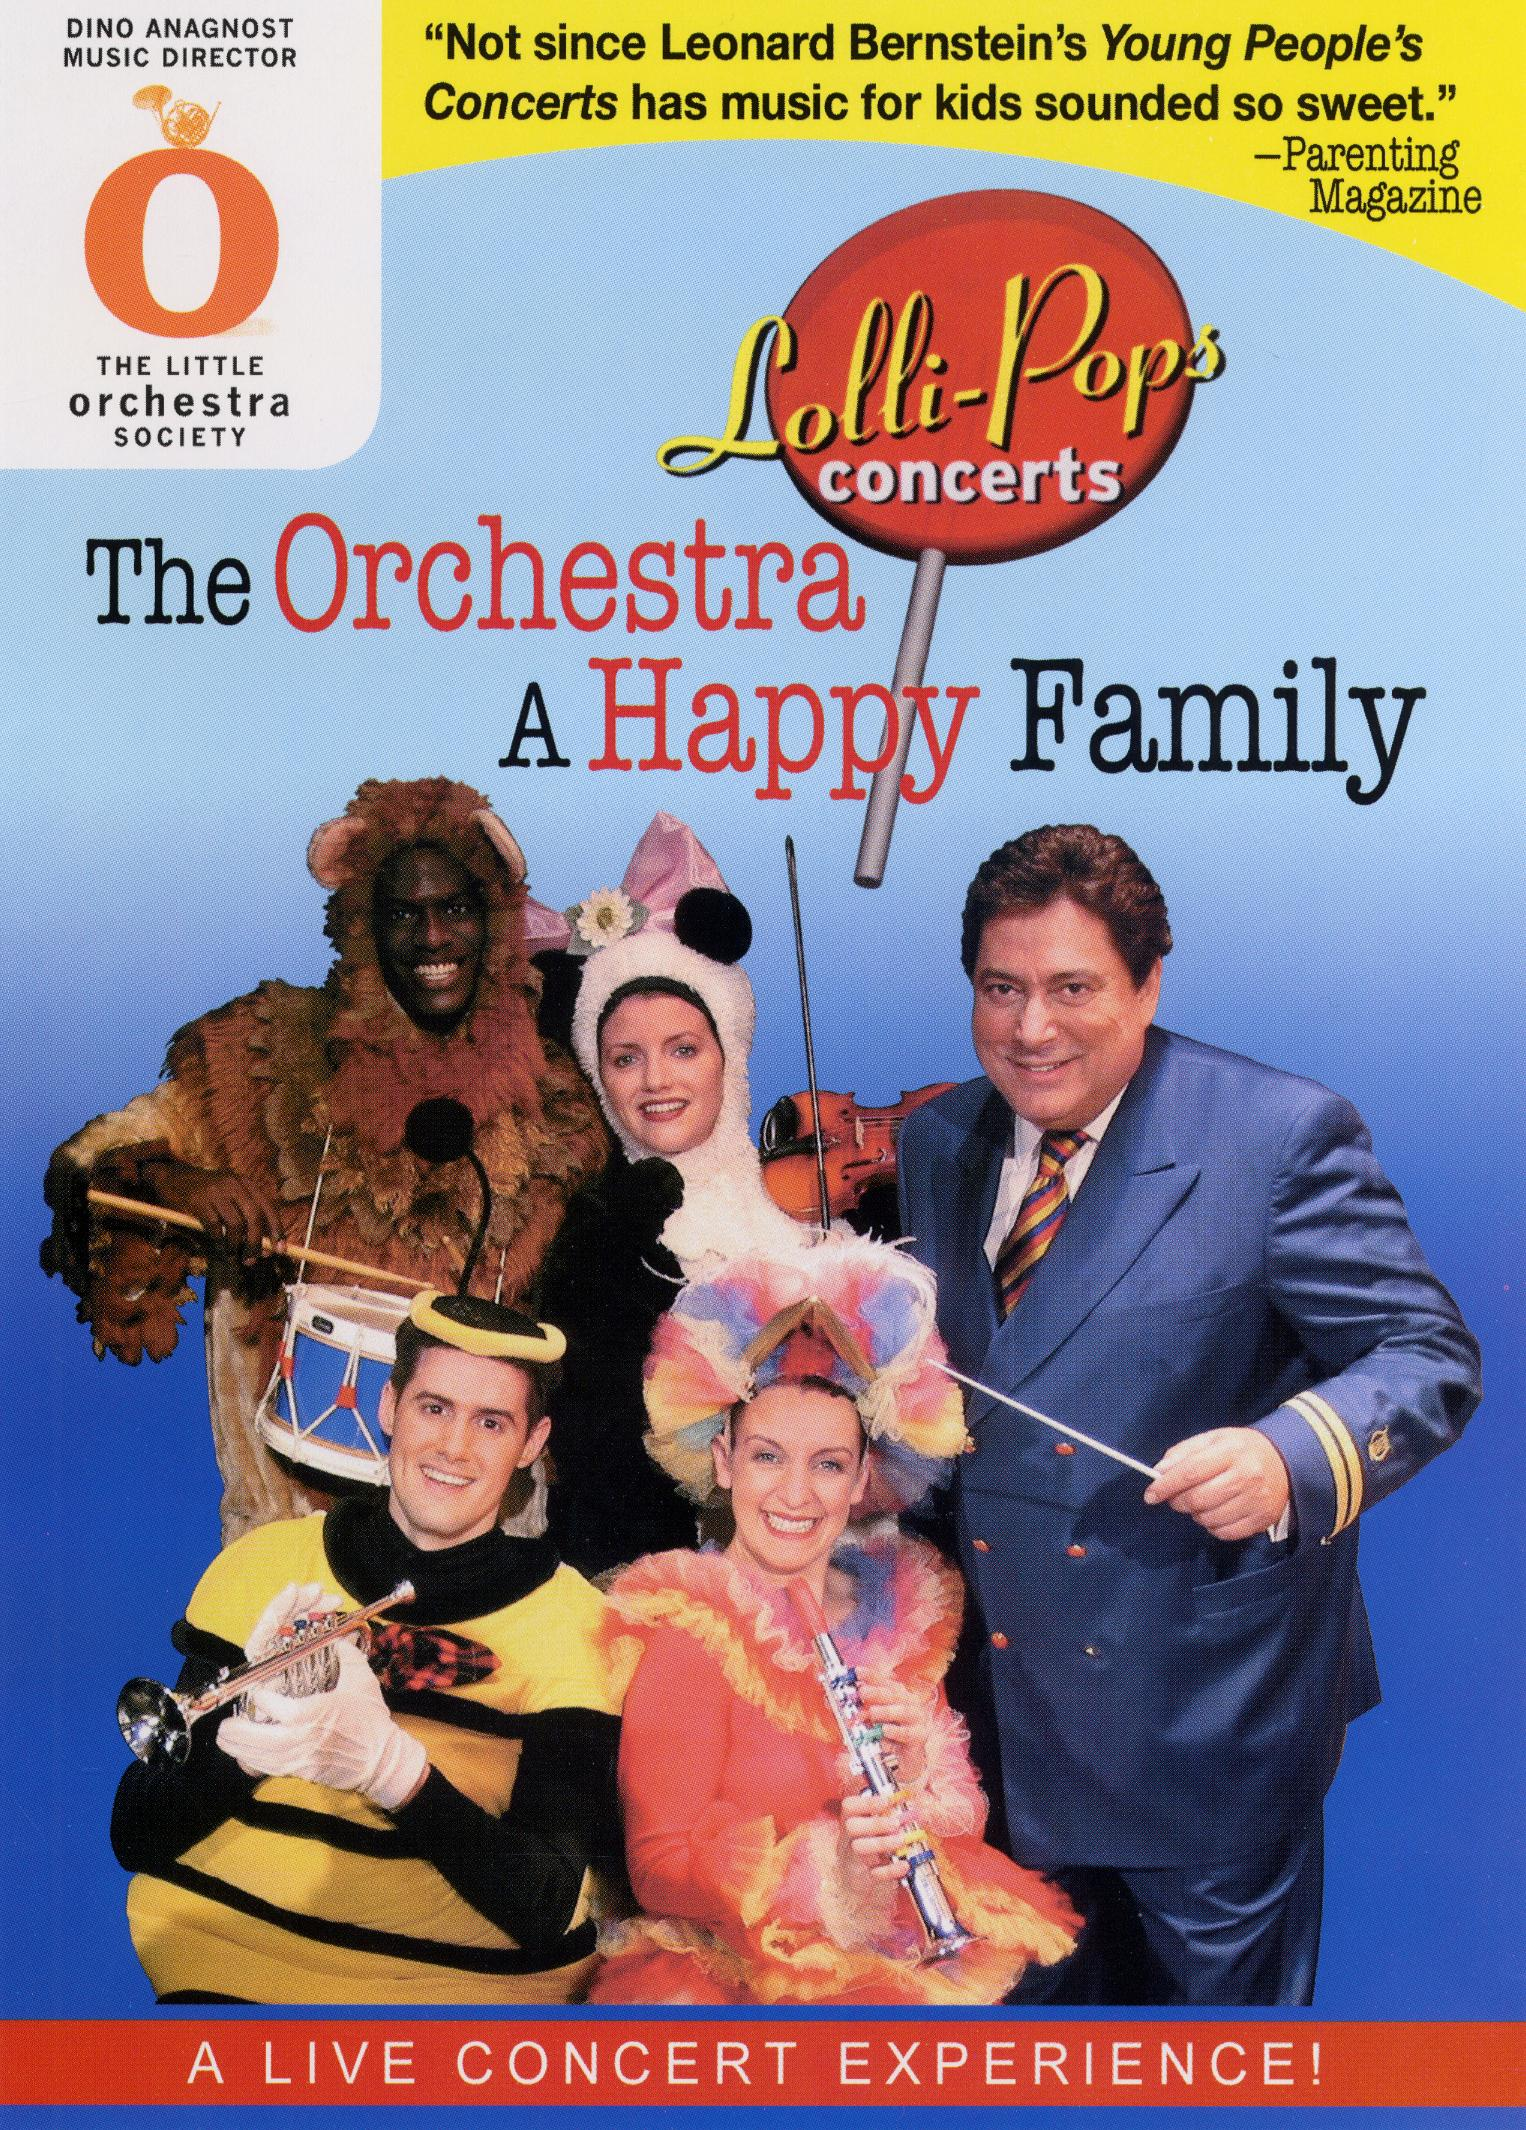 The Little Orchestra Society: The Orchestra - A Happy Family